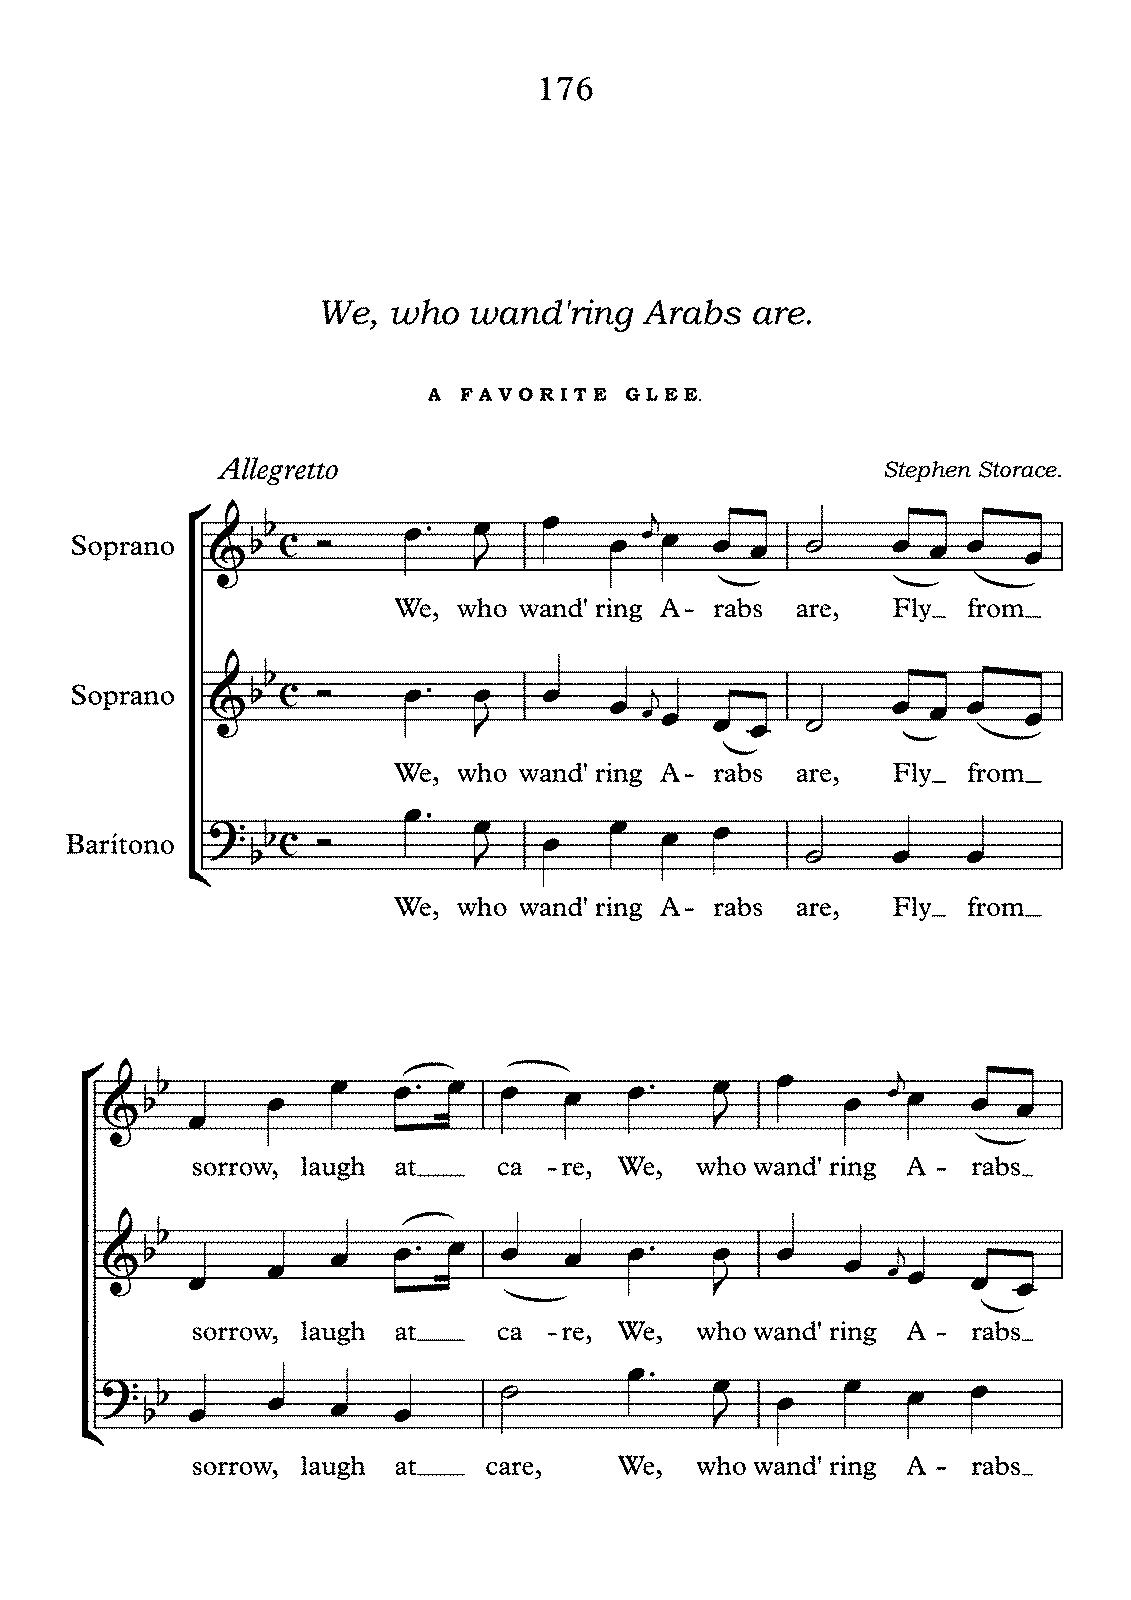 PMLP599862-We, who wand'ring Arabs are - Stephen Storace - Partitura completa.pdf